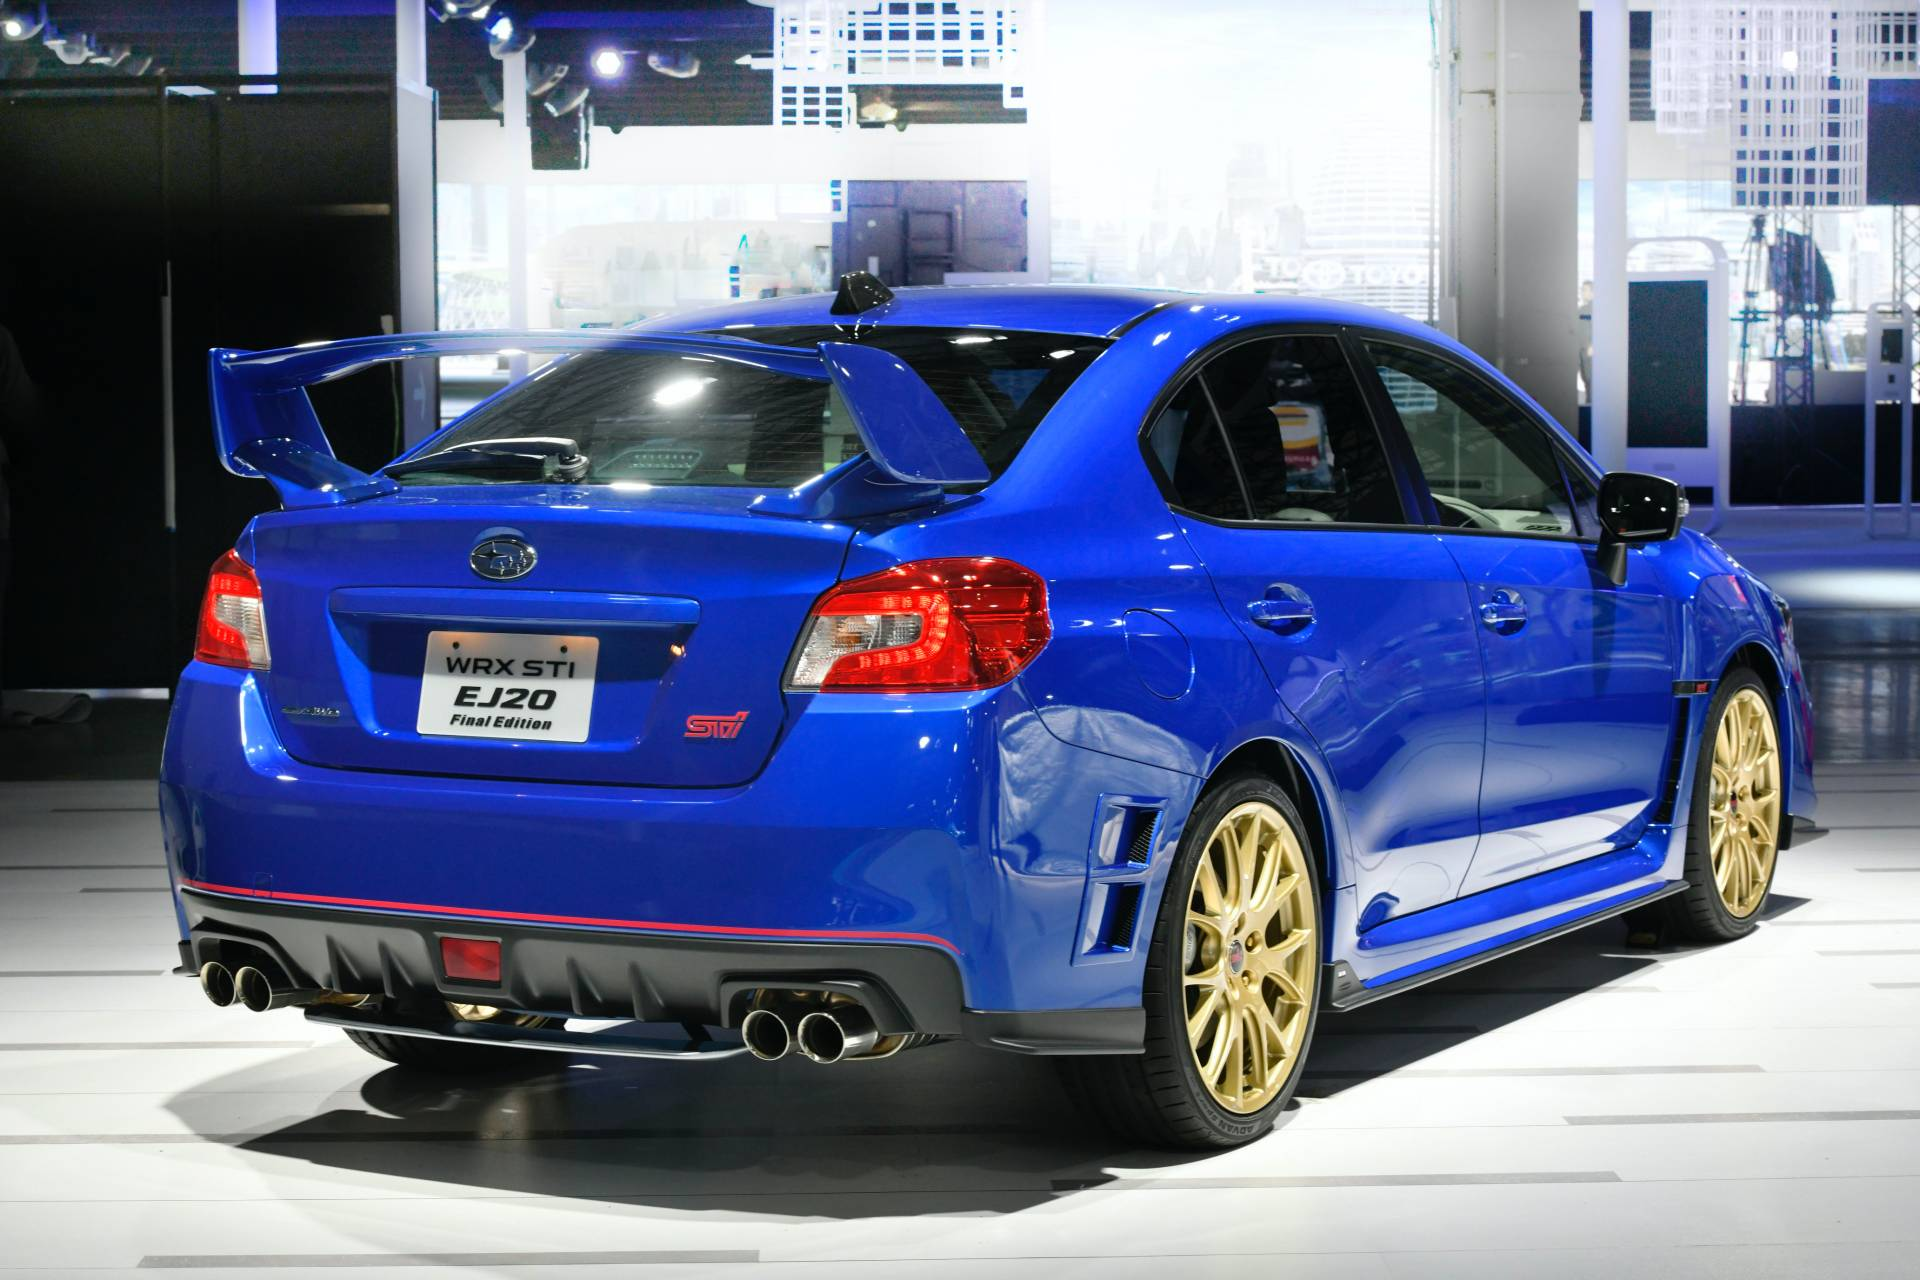 Subaru_WRX_STI_EJ20_Final_Edition_0014